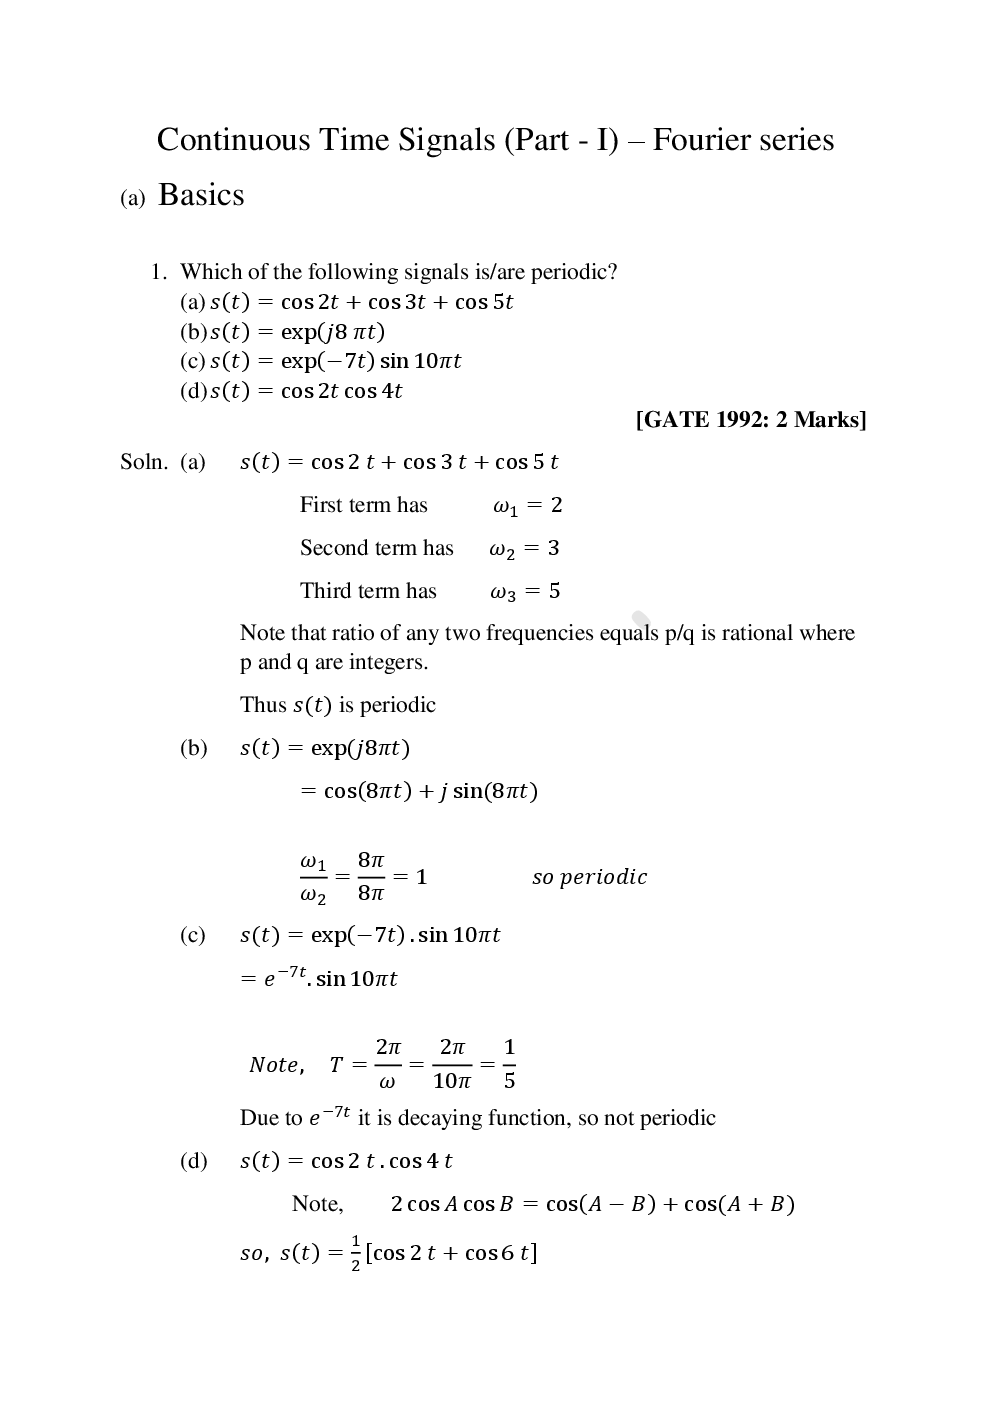 GATE Study Material For Signals And Systems - Page 2